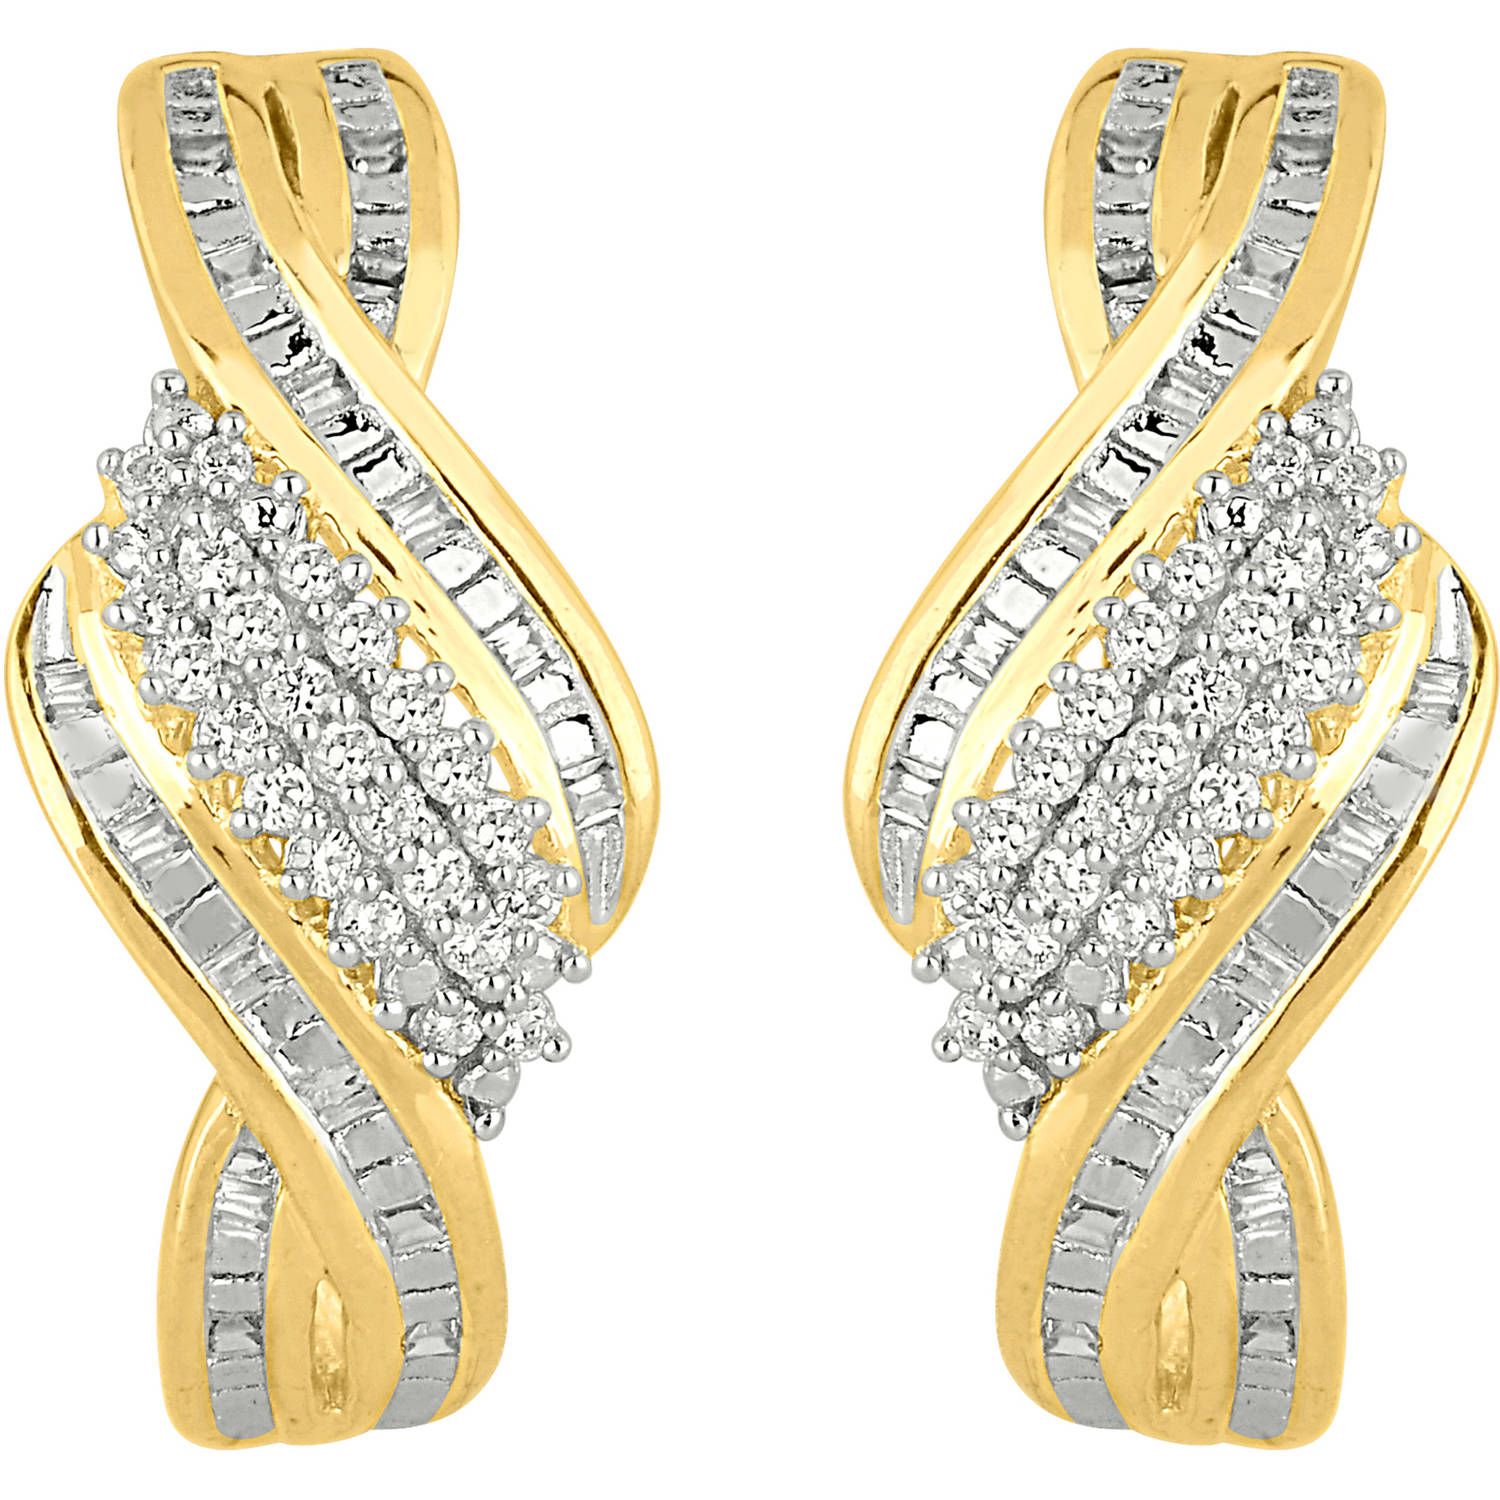 1/2 Carat T.W. Diamond 10kt Yellow Gold Twist Shrimp Earrings